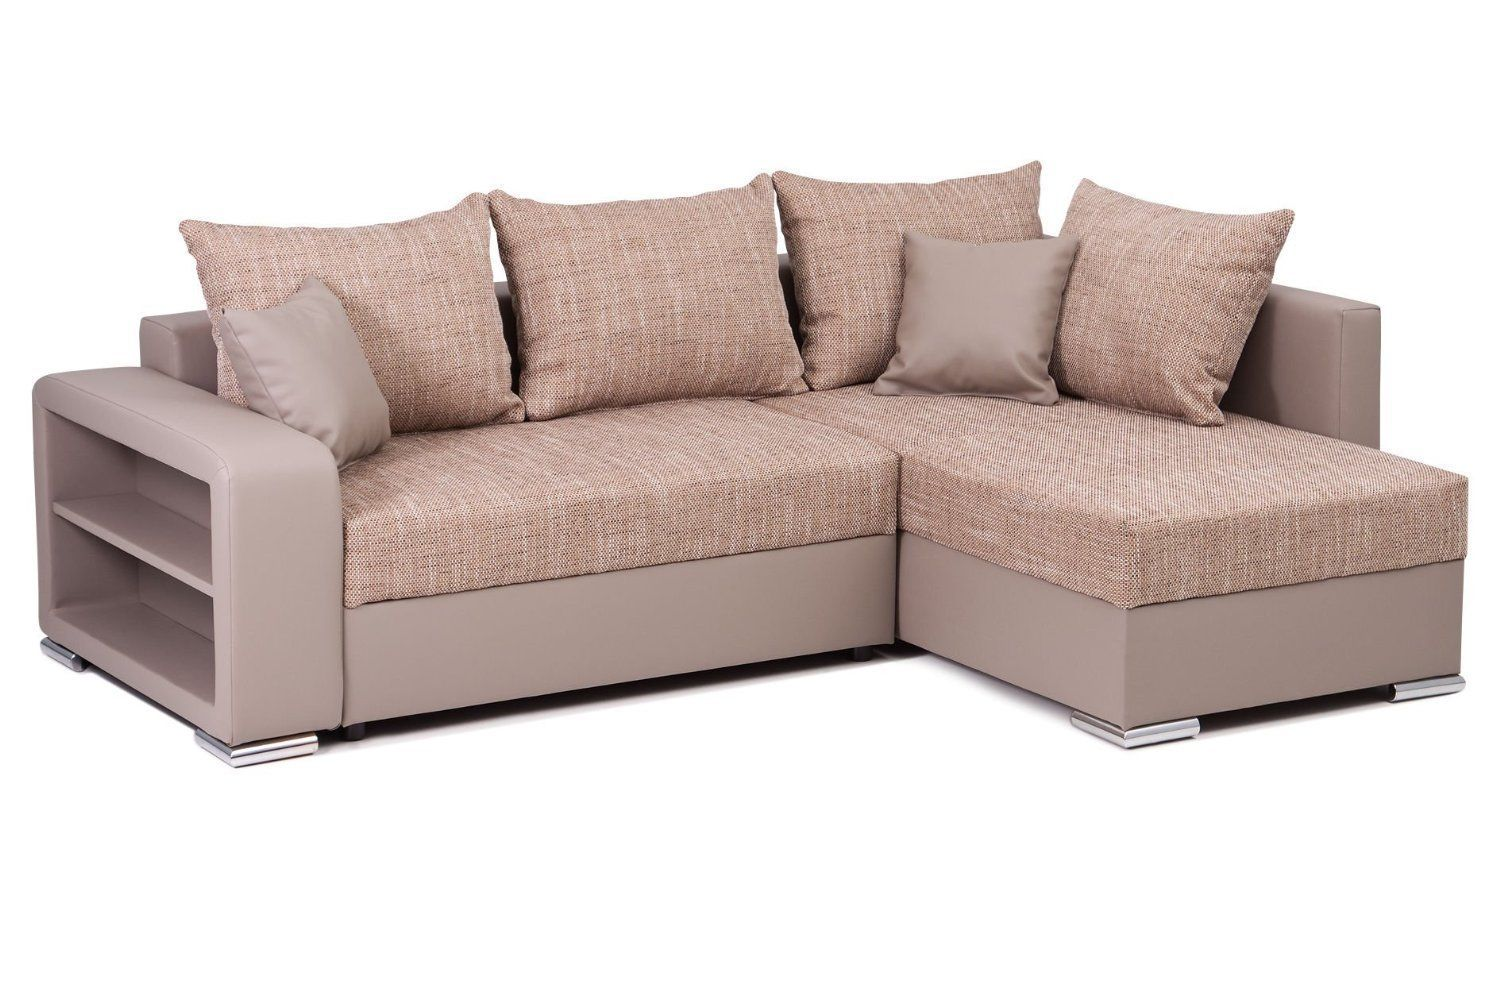 Canape lit tissu convertible hst cpelit hst osk st vente for Canape tissu